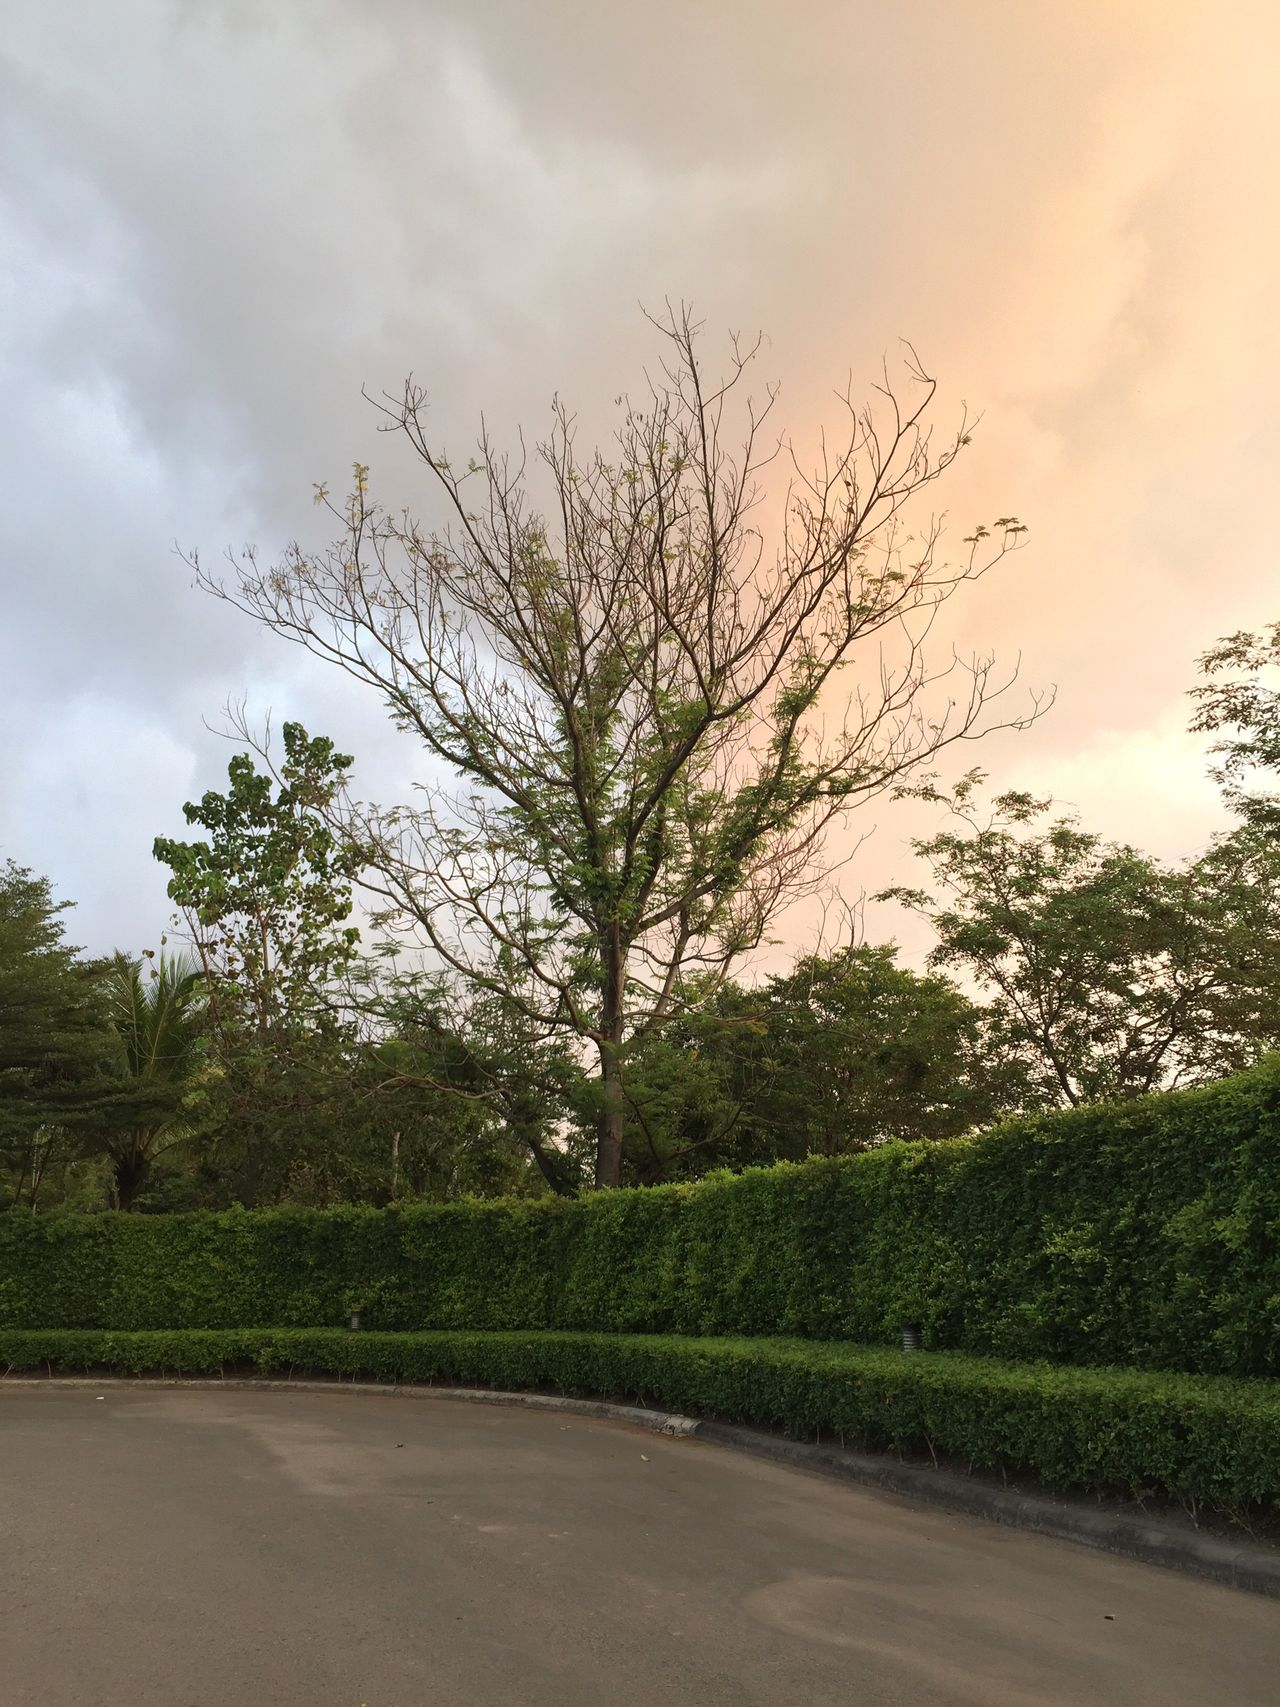 Tree Sky Road Nature No People Growth Outdoors Cloud - Sky Tranquility The Way Forward Beauty In Nature Tranquil Scene Day Scenics Landscape